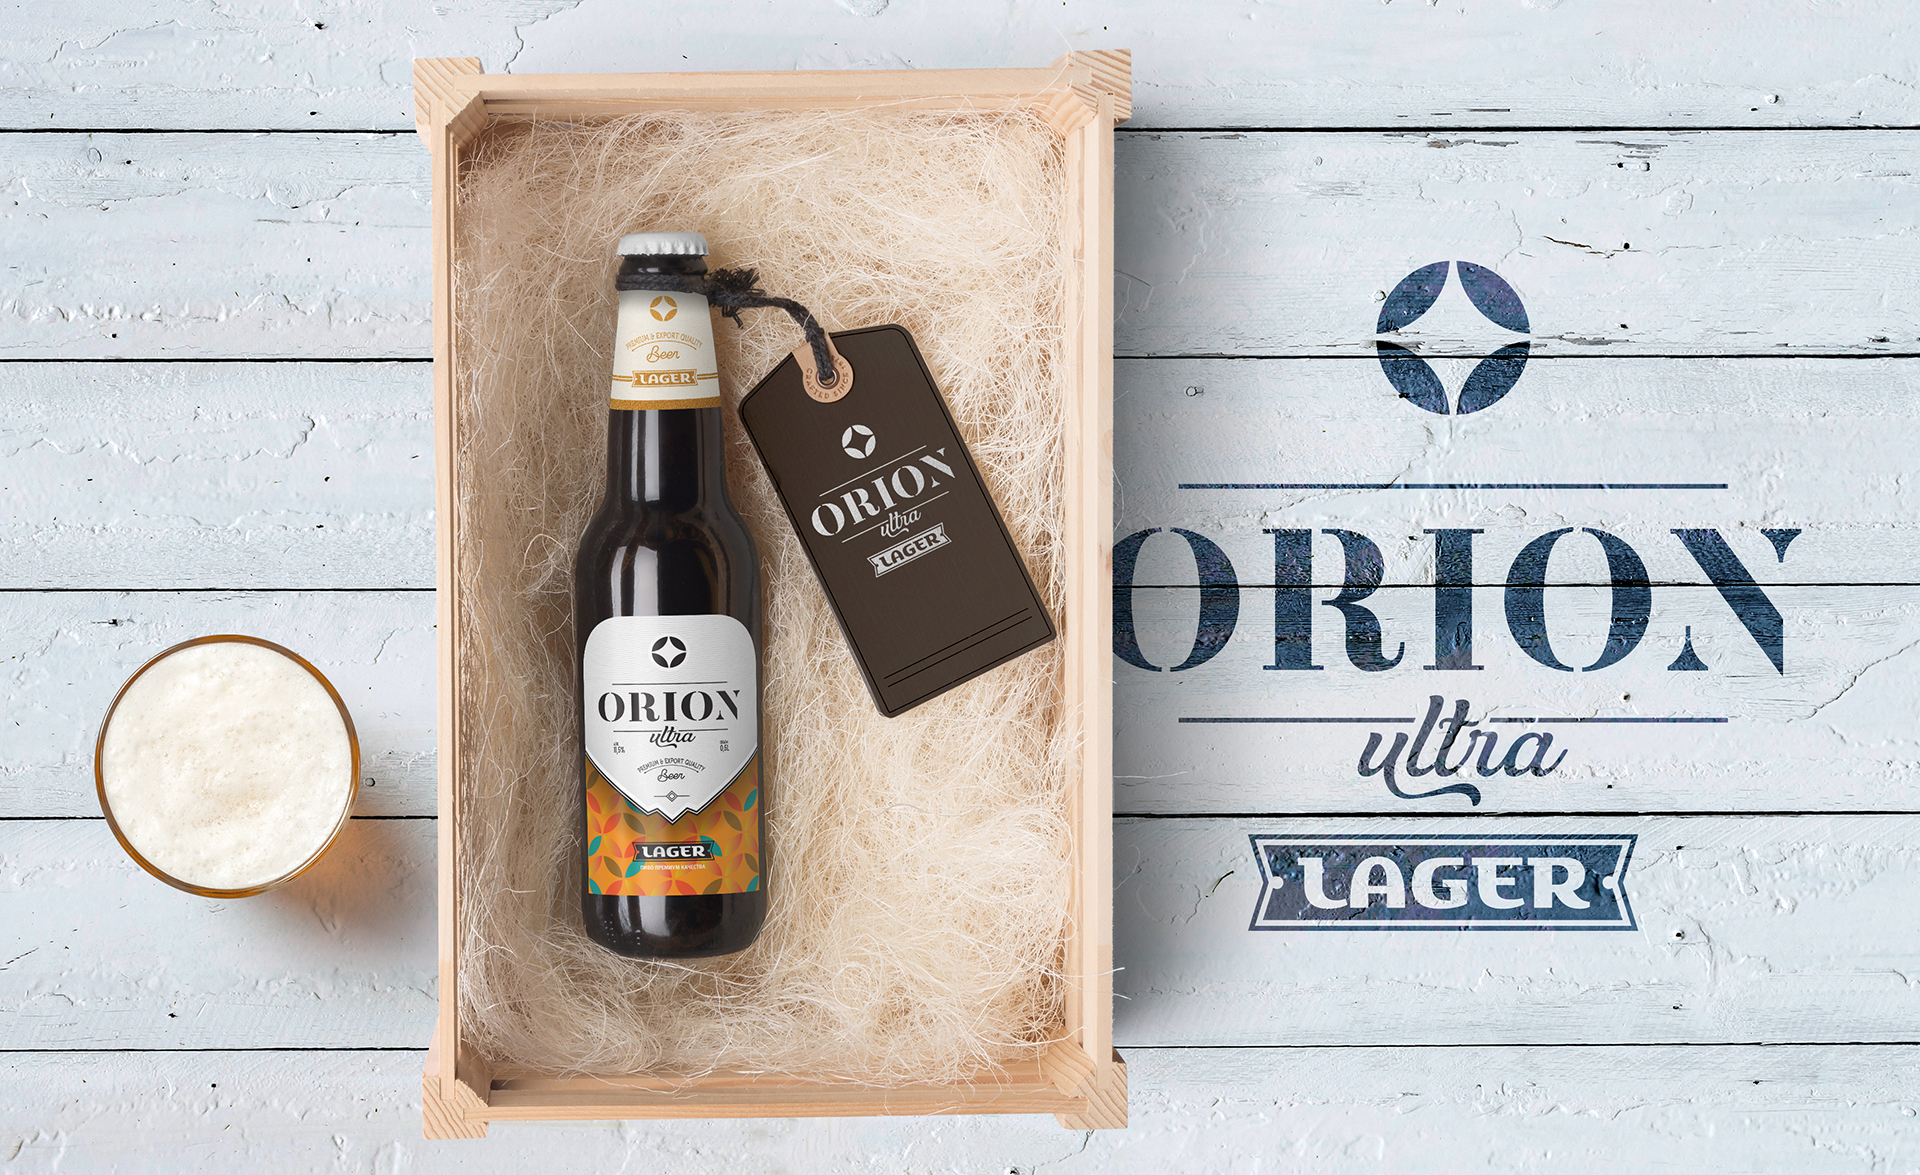 Orion Ultra Lager Beer from Kyrgyzstan Designed by Alexey Lysogorov